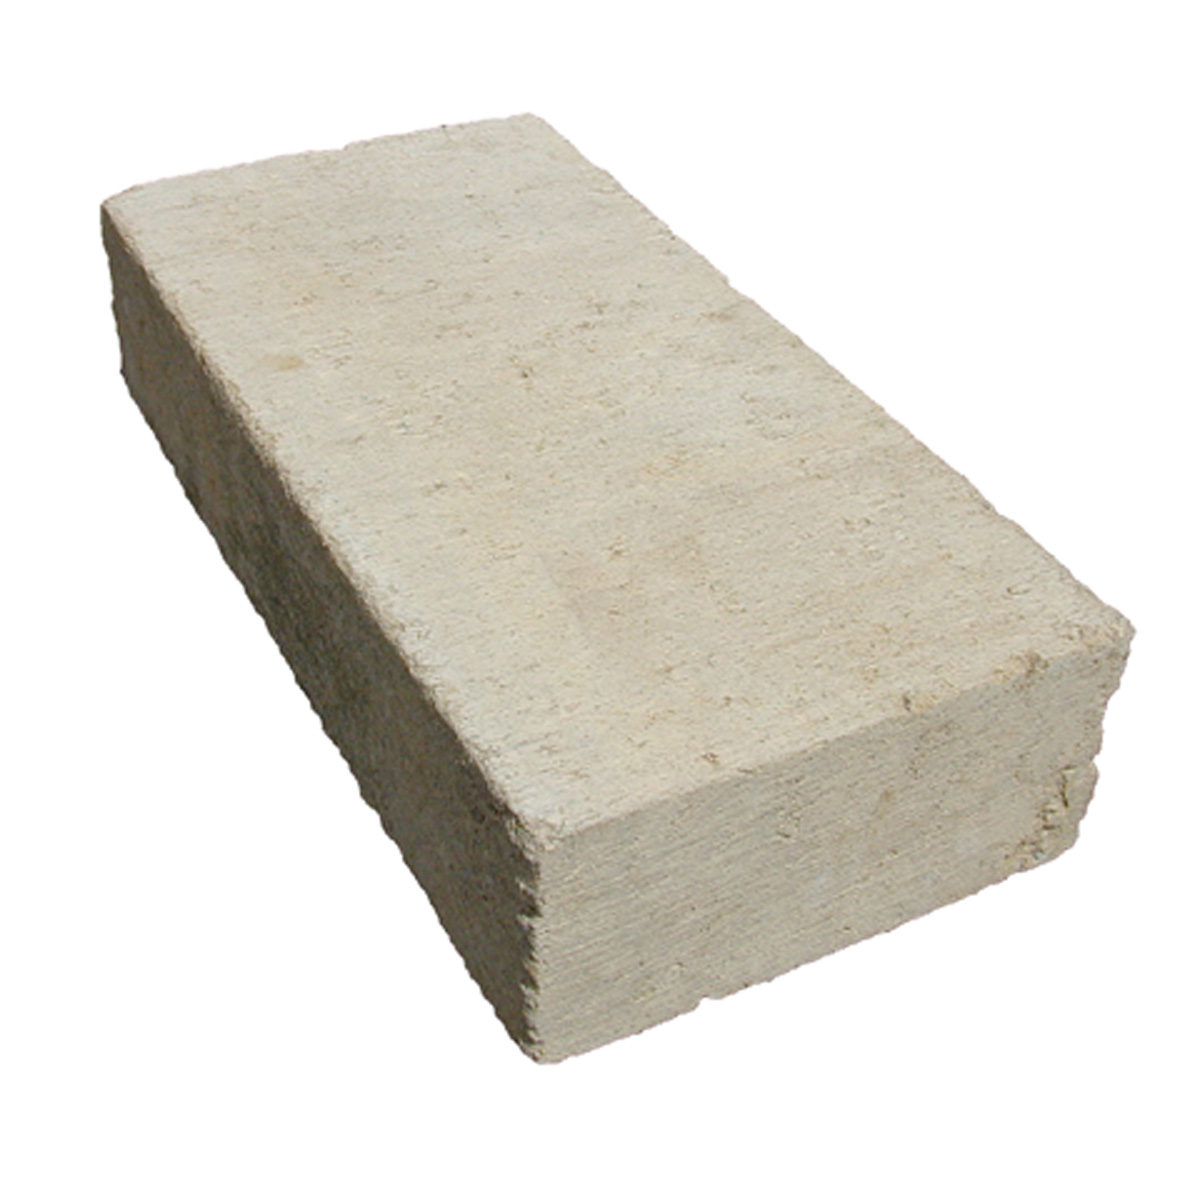 SOLID CONCRETE BLOCK